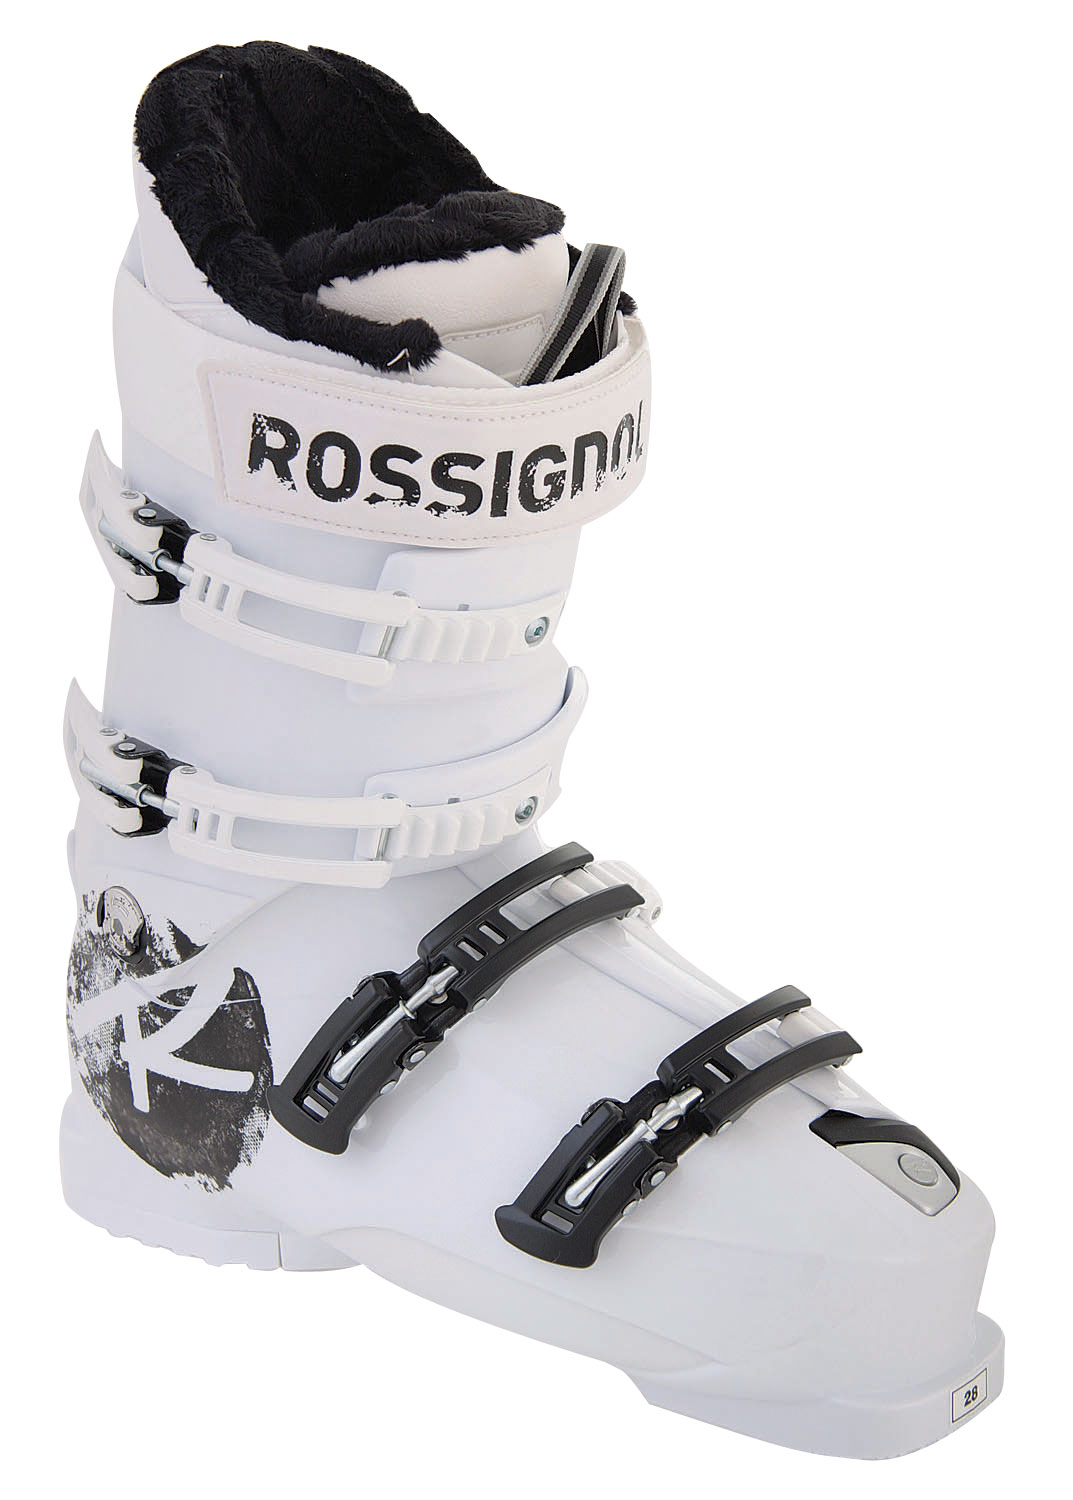 Ski Whether you are in the backcountry or the park, the Rossignol SAS 110 Sensor3 high powered freestyle boot is for aggressive skiers that seek ultimate sensitivity and fit.Key Features of the Rossignol SAS 110 Sensor3 Ski Boots: Carbon/Composite Cuff Insert Comfort Heel Diagonal Buckles Pro Fit - PU Anatomical Padding Material Pro Fit Instep Pro Fit One Piece Toe Box and Tongue Sensor3 Concept Tool Free Catches Visco 'Shock' Zeppa Flex: 100 Last: 100mm - $399.95